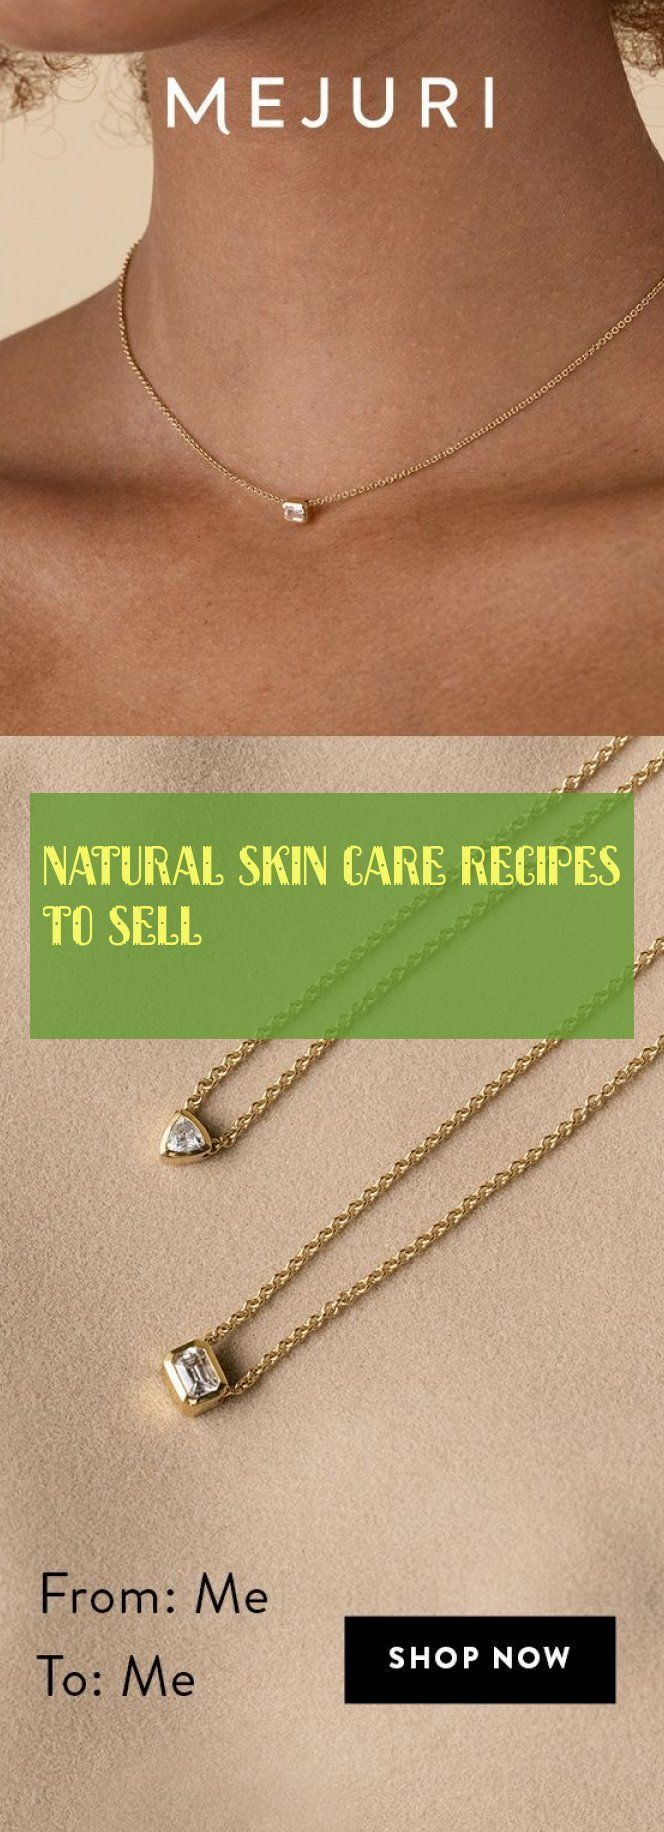 natural skin care recipes to sell – natural skin care recipes for sale … – #Na…